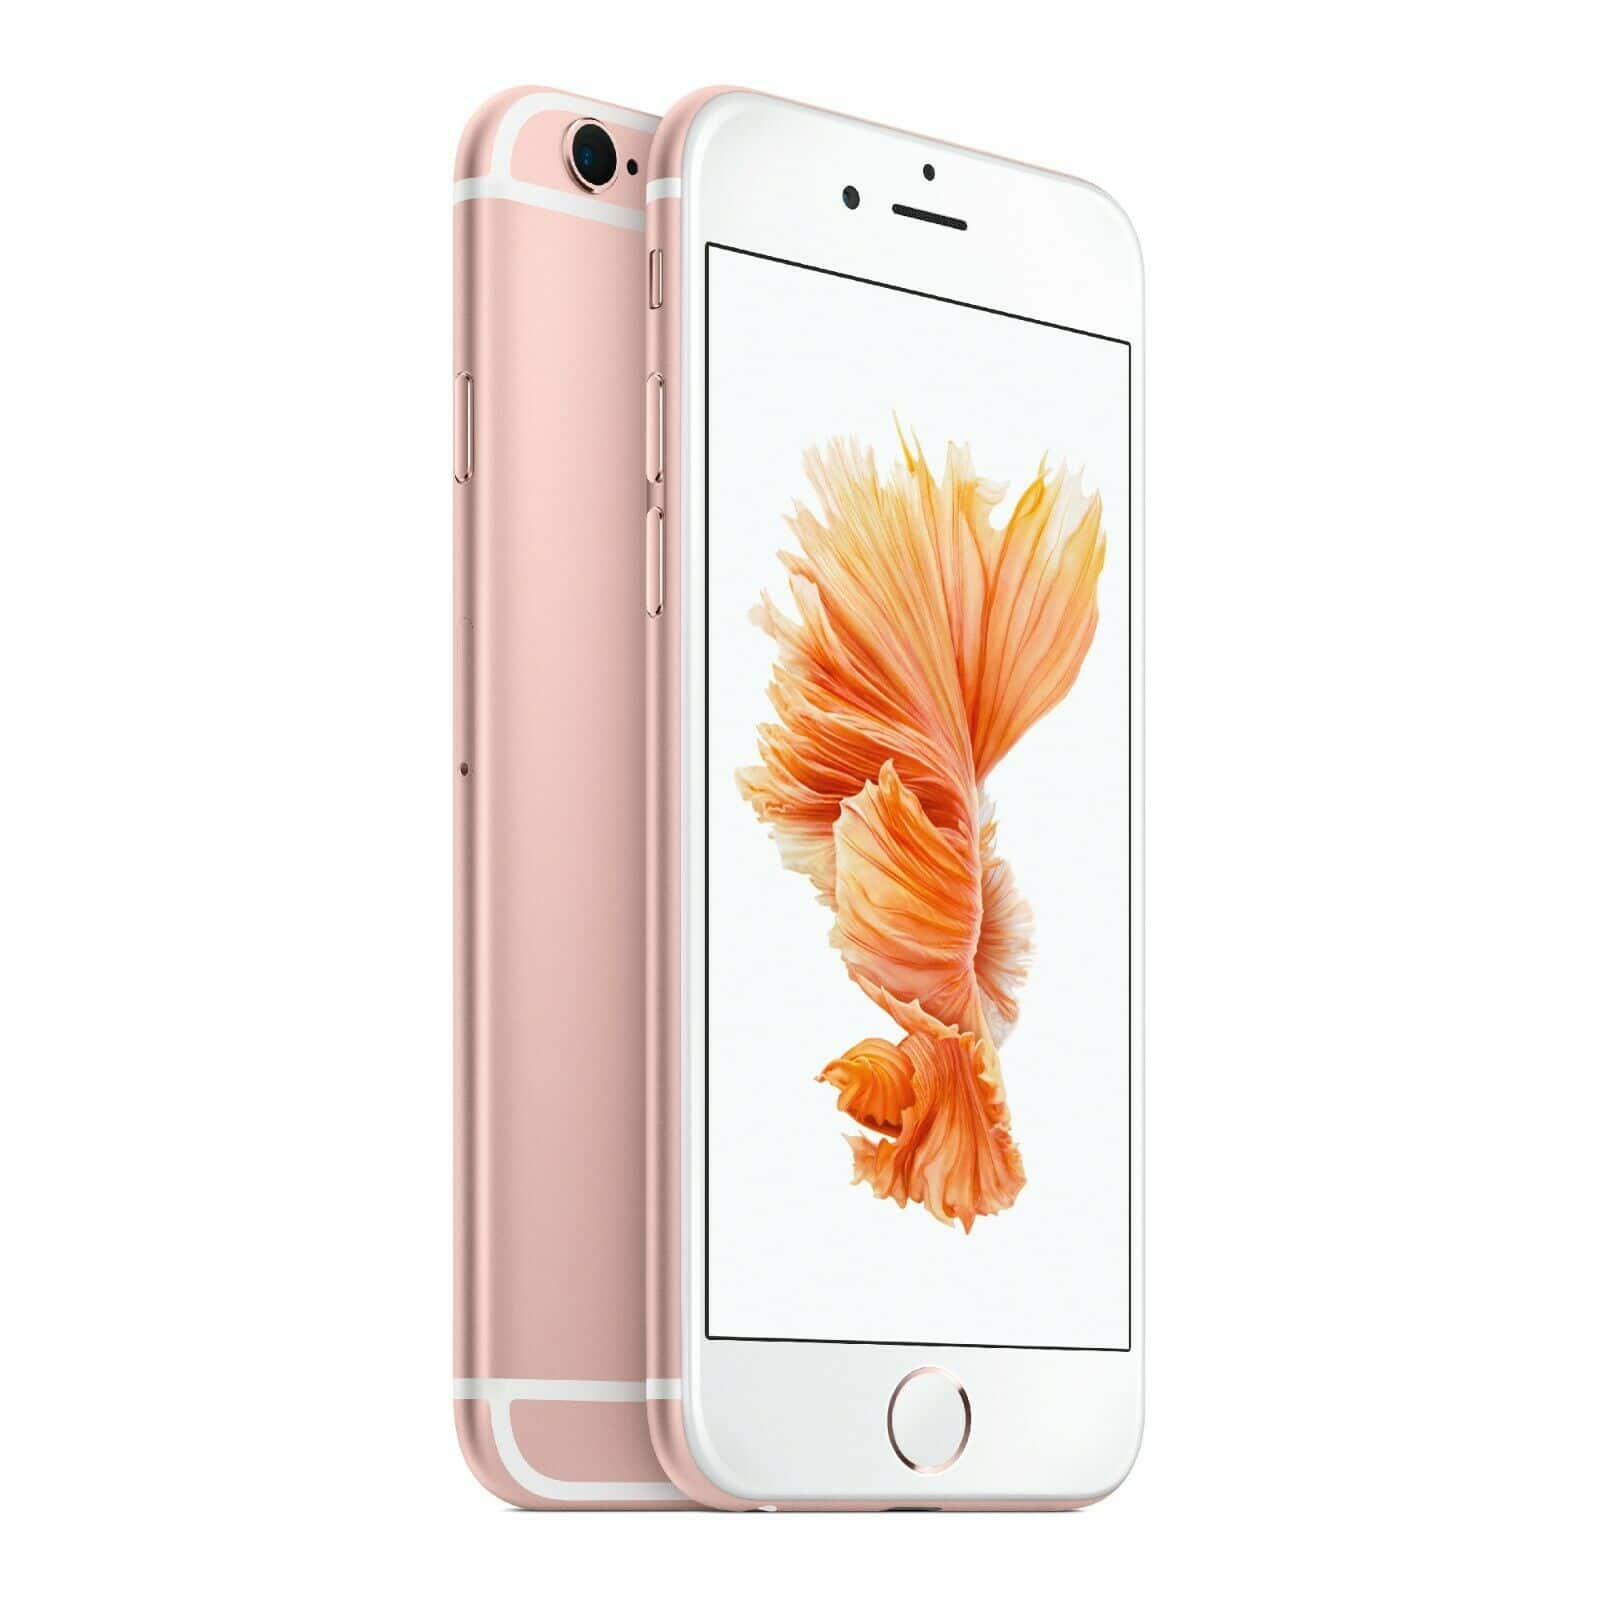 Tracfone Carrier-Locked Refurbished Apple iPhone 6S & $20 TF Unlimited Plan Incl $69.99